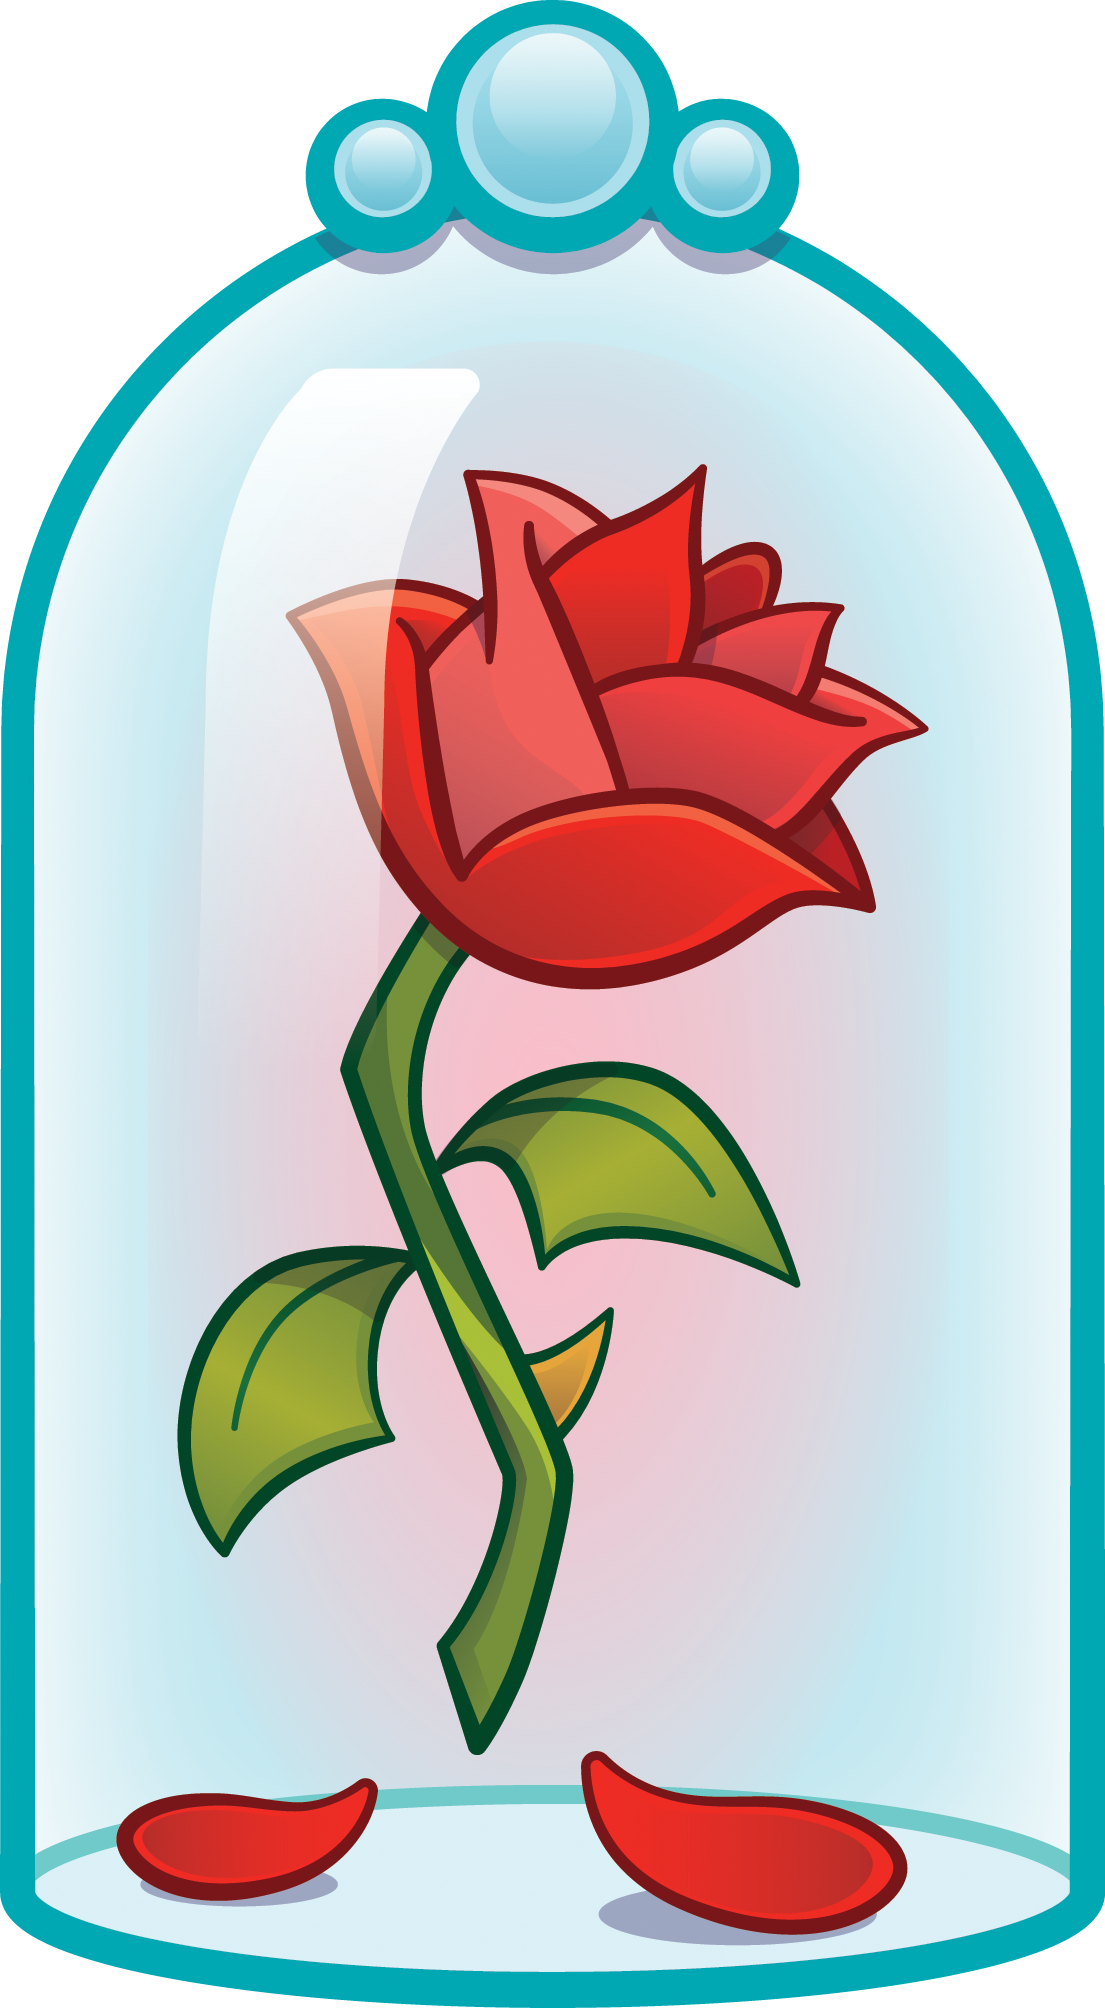 Beauty and the beast rose png. Pin by f e